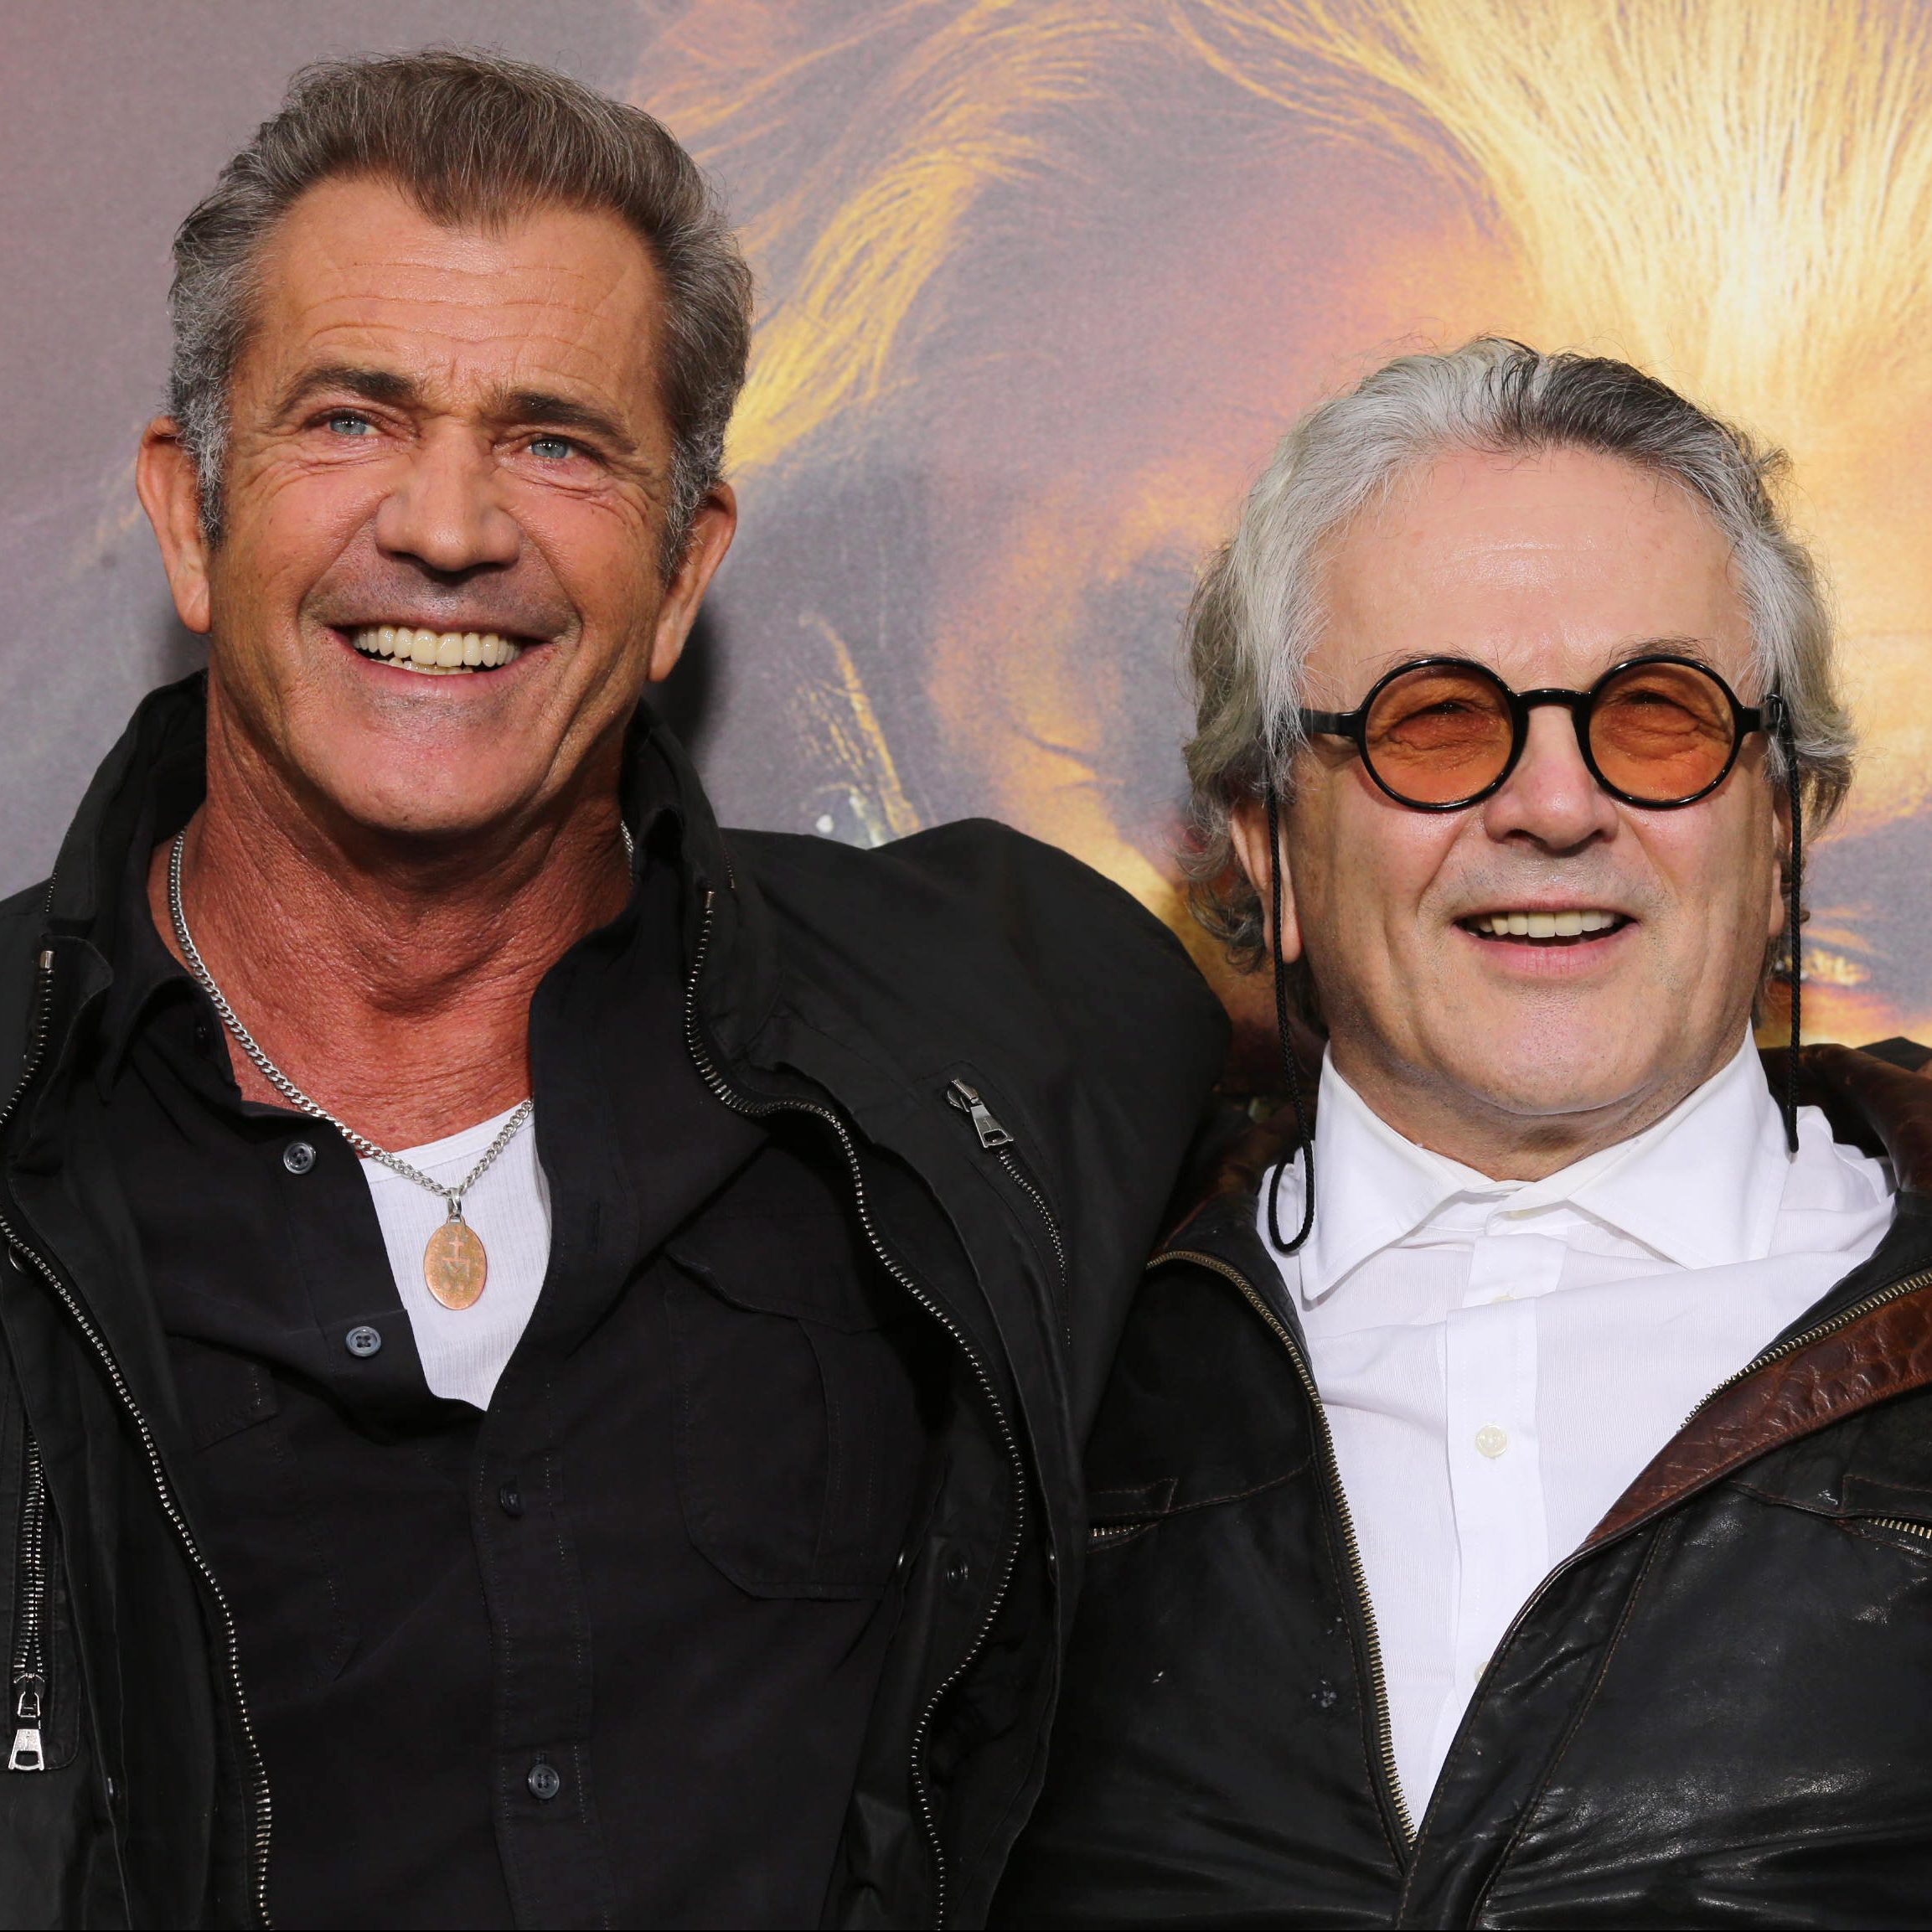 MadMaxPremiere MelGeorgeTom e1573642831524 Illegal Stunts And Extras Paid In Beer: How They Made 1979's Mad Max